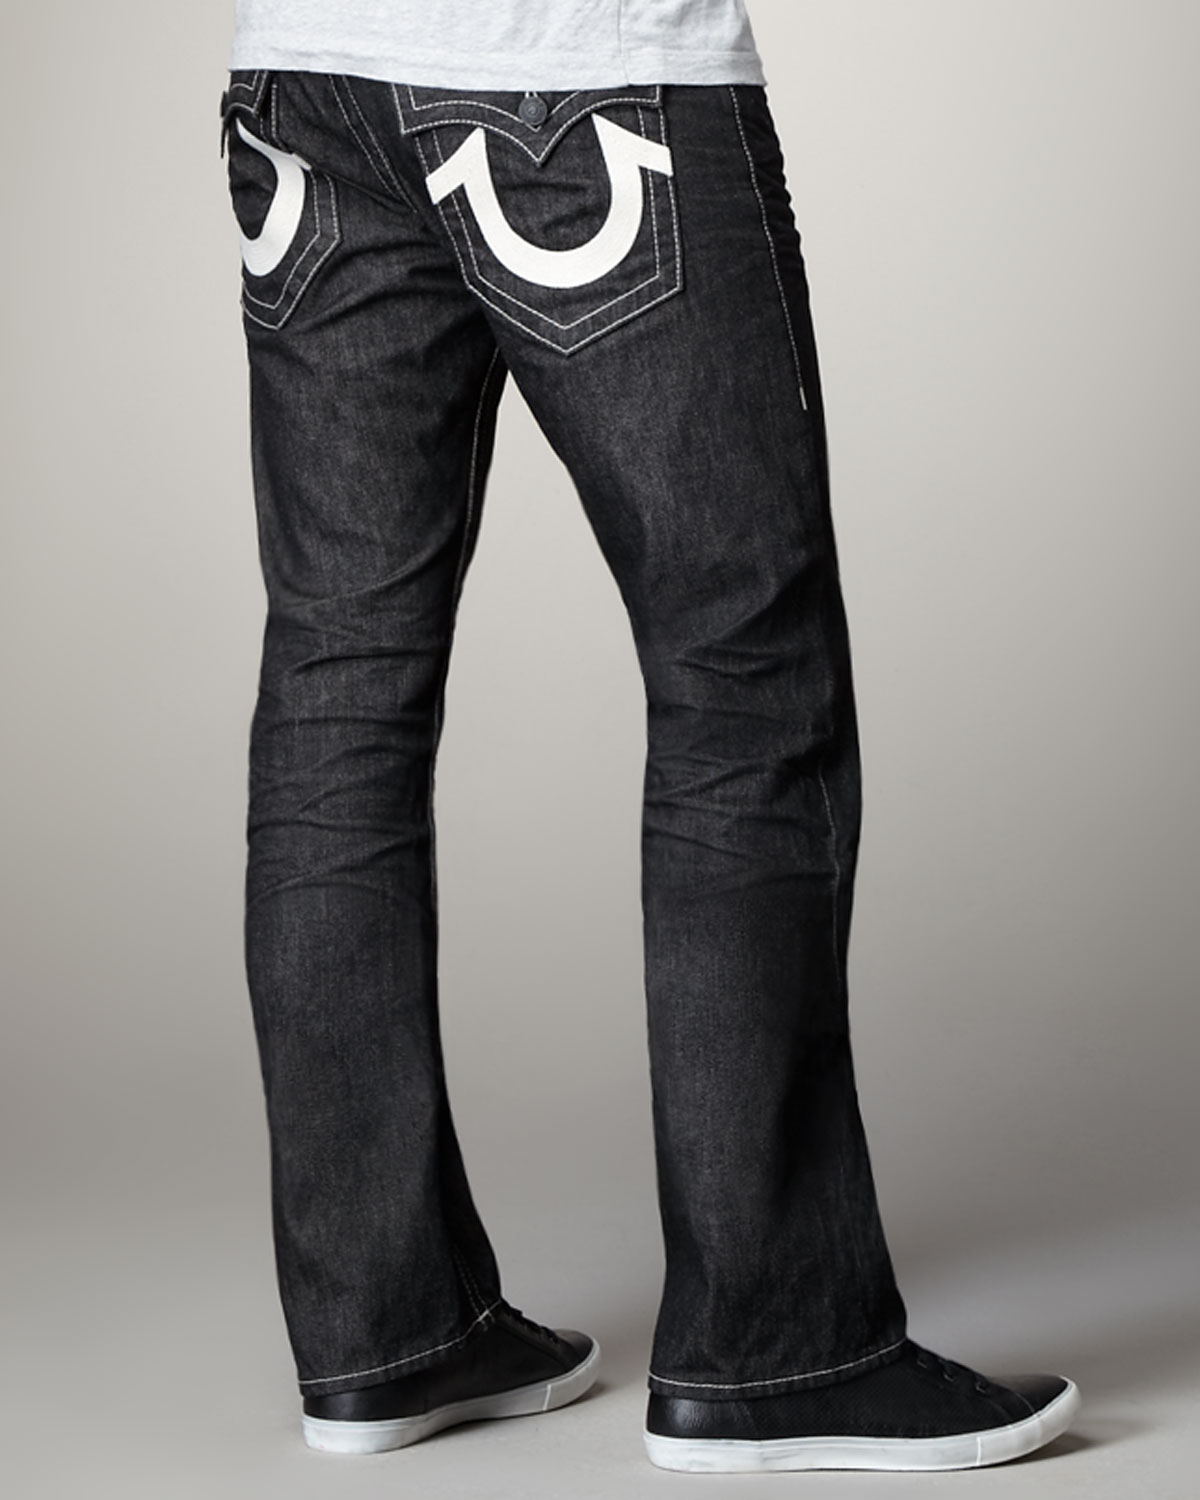 True Religion Jeans For Women Fashion